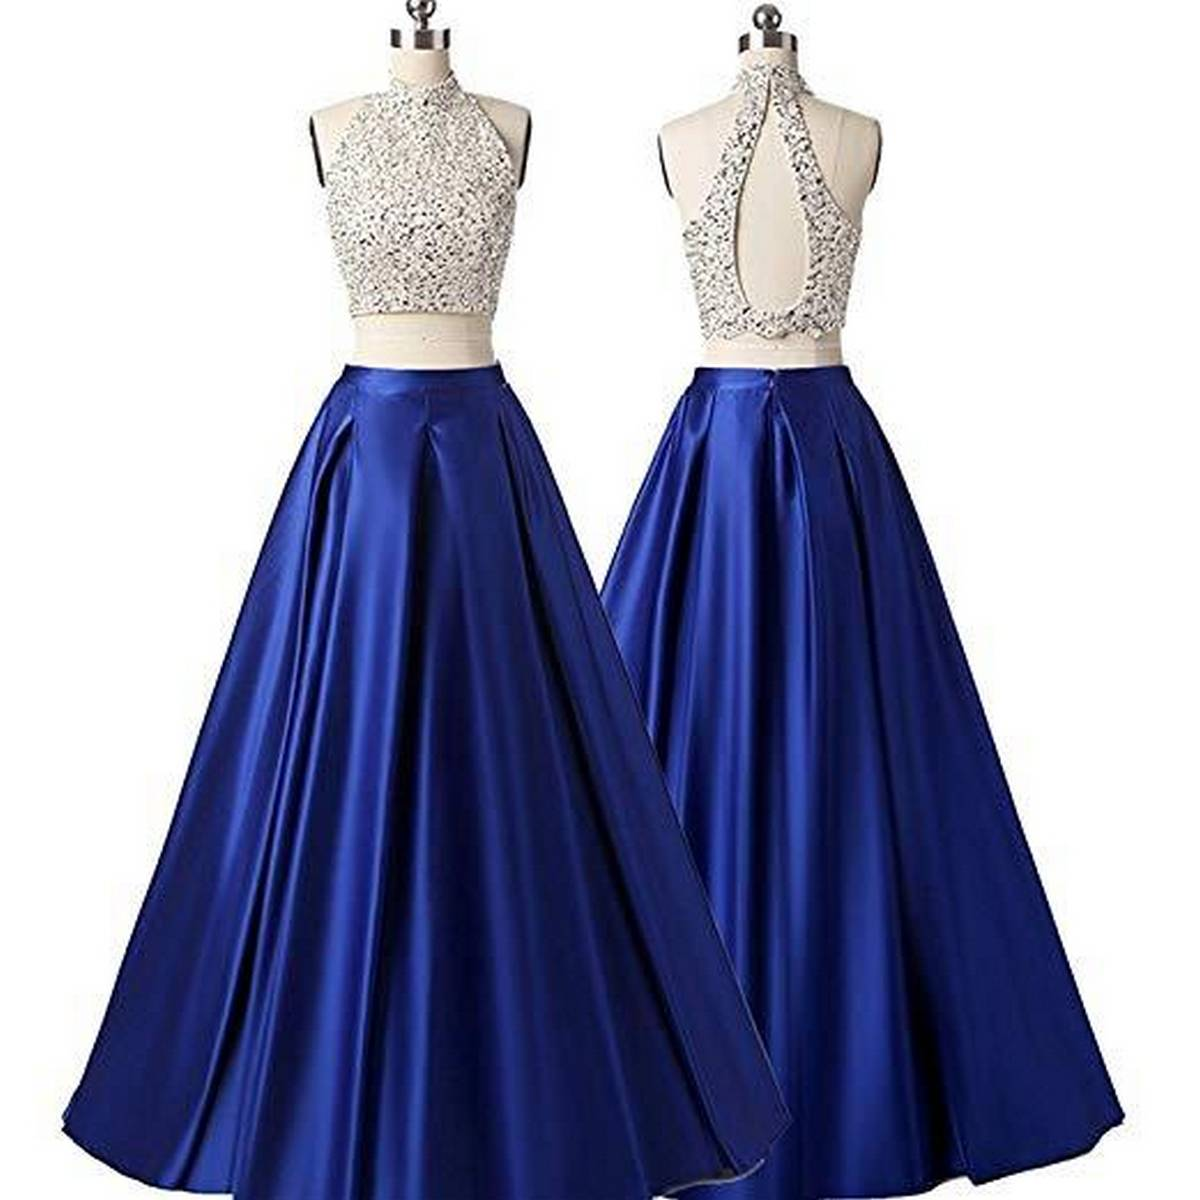 PINK LADY Branded Satin Blue Long Maxi Stylish Skirt For Women With Can can, Skirt For For Girls, Wedding Skirt For Women, Maxi Skirt For Girls